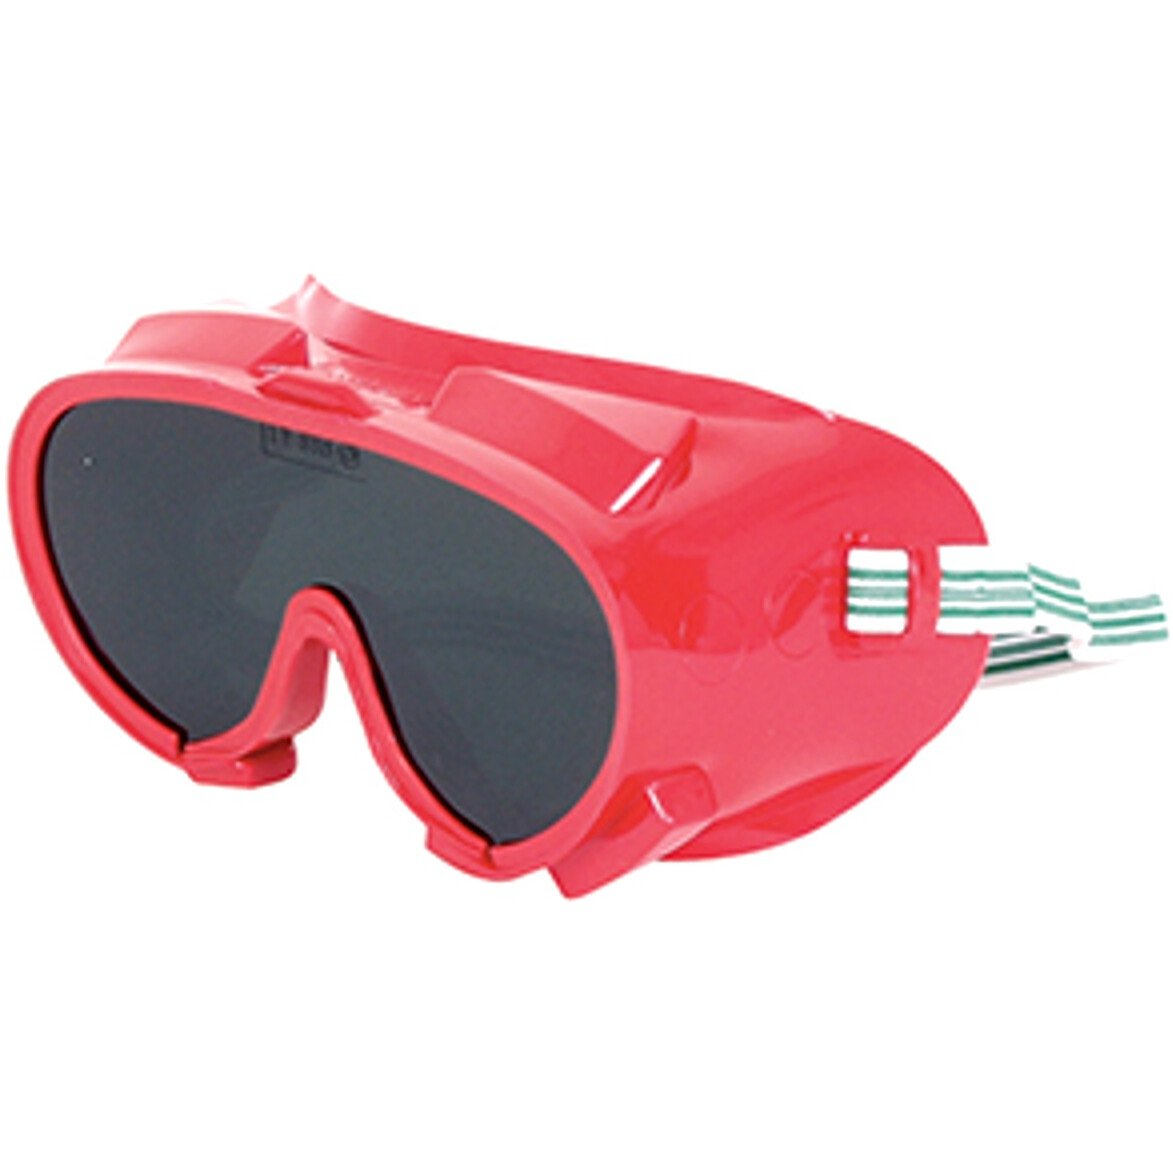 JSP G-SQUIRE Squire Welding Goggle Shade 5